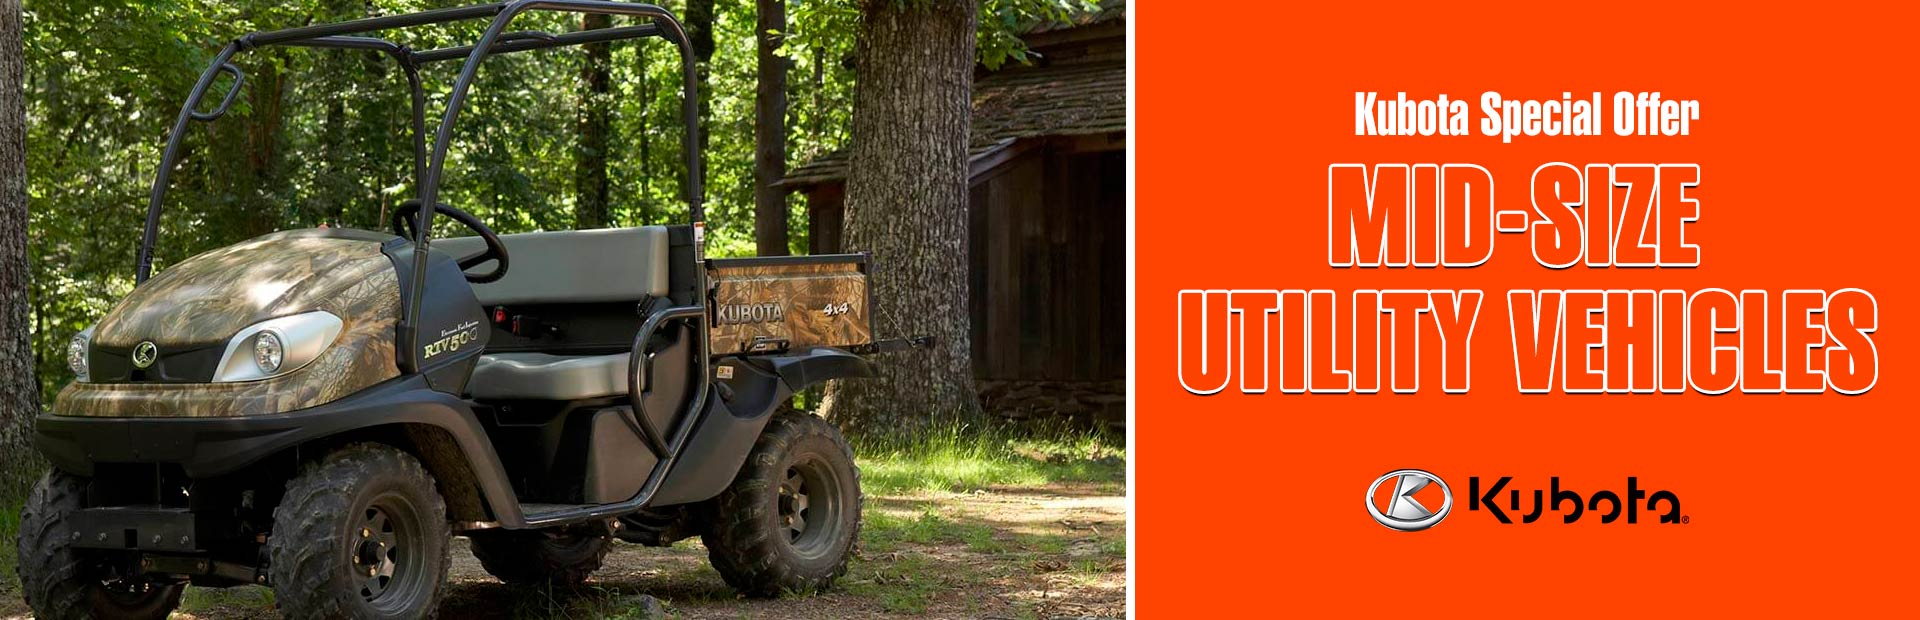 Kubota: Kubota Special Offer - Mid-Size Utility Vehicles